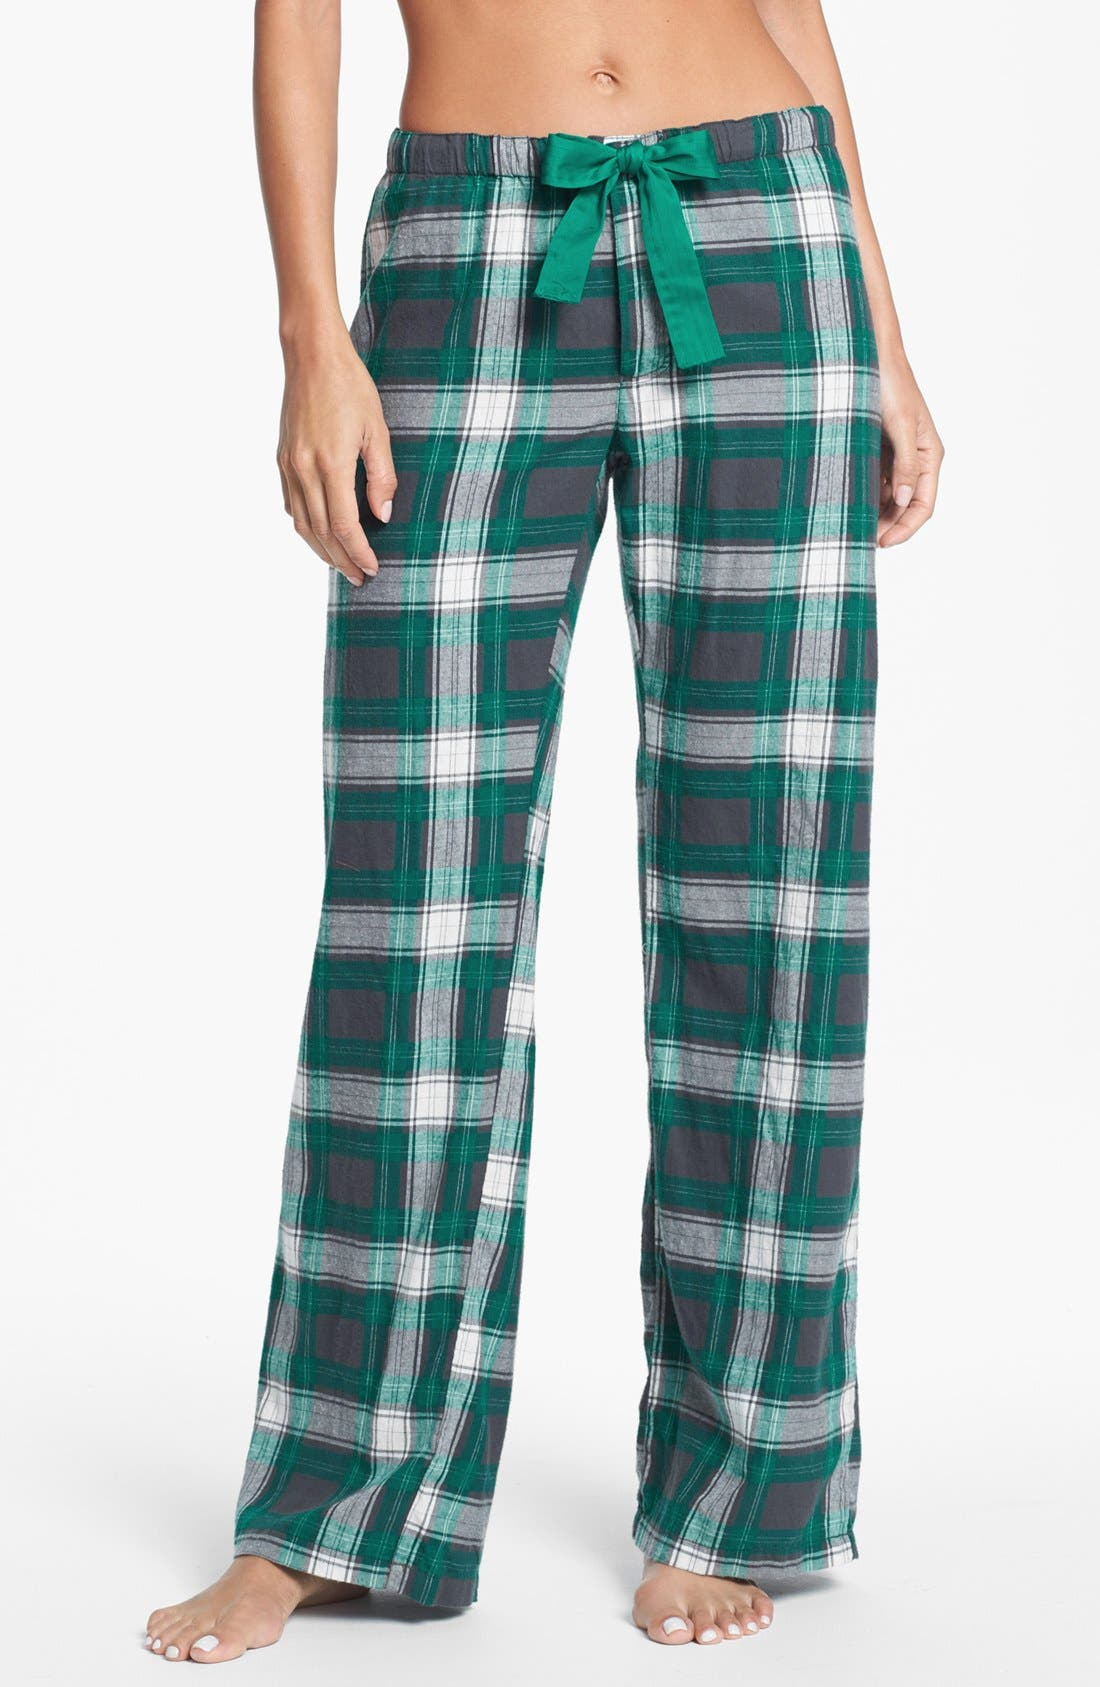 Alternate Image 1 Selected - PJ Salvage 'Enchanted' Lounge Pants